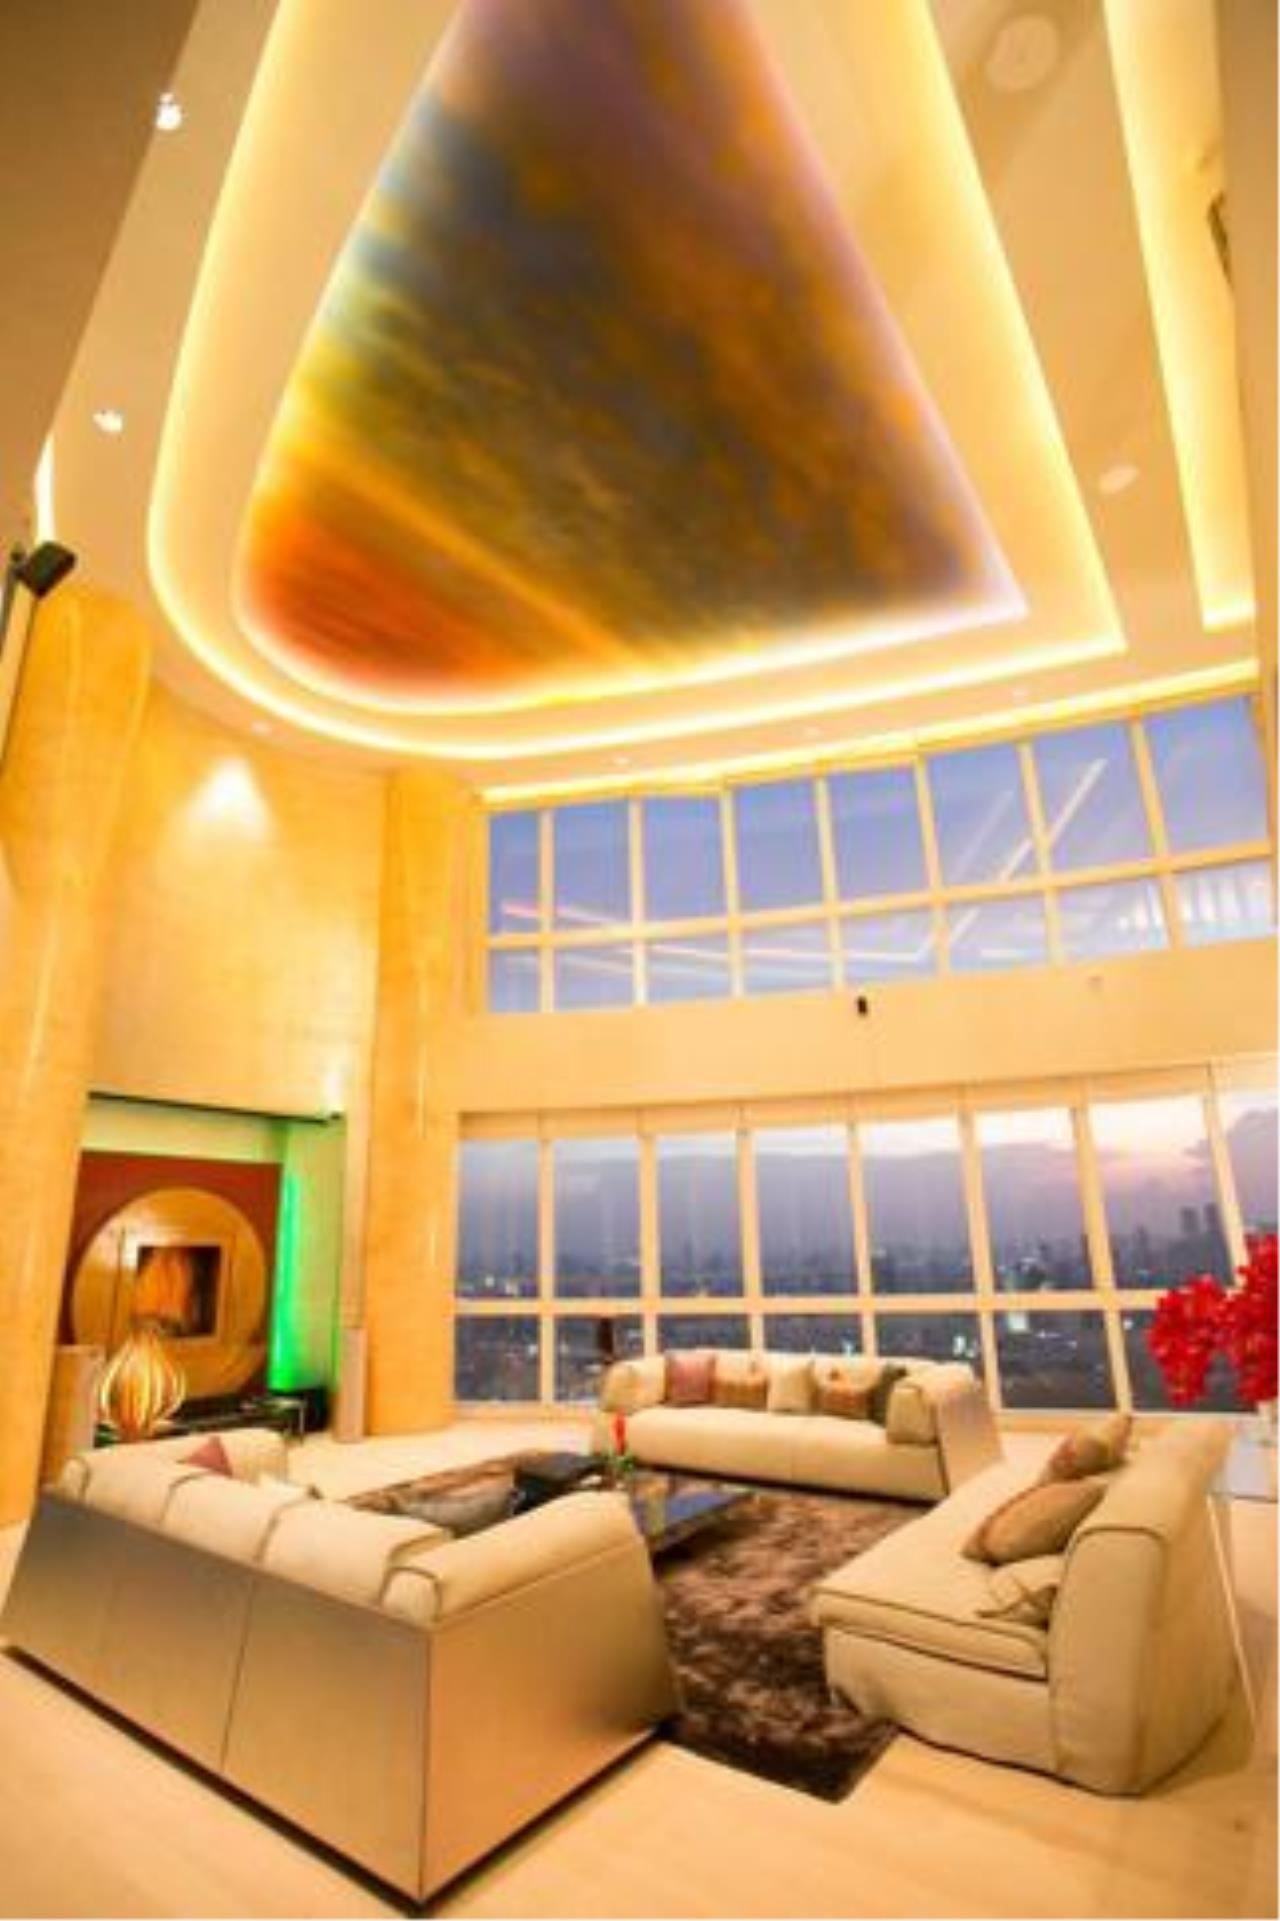 Right Move Thailand Agency's CS2029 Millennium Residence Duplex penthouse for Sale 130,000,000THB - 5 Bedrooms - 569sqm 5